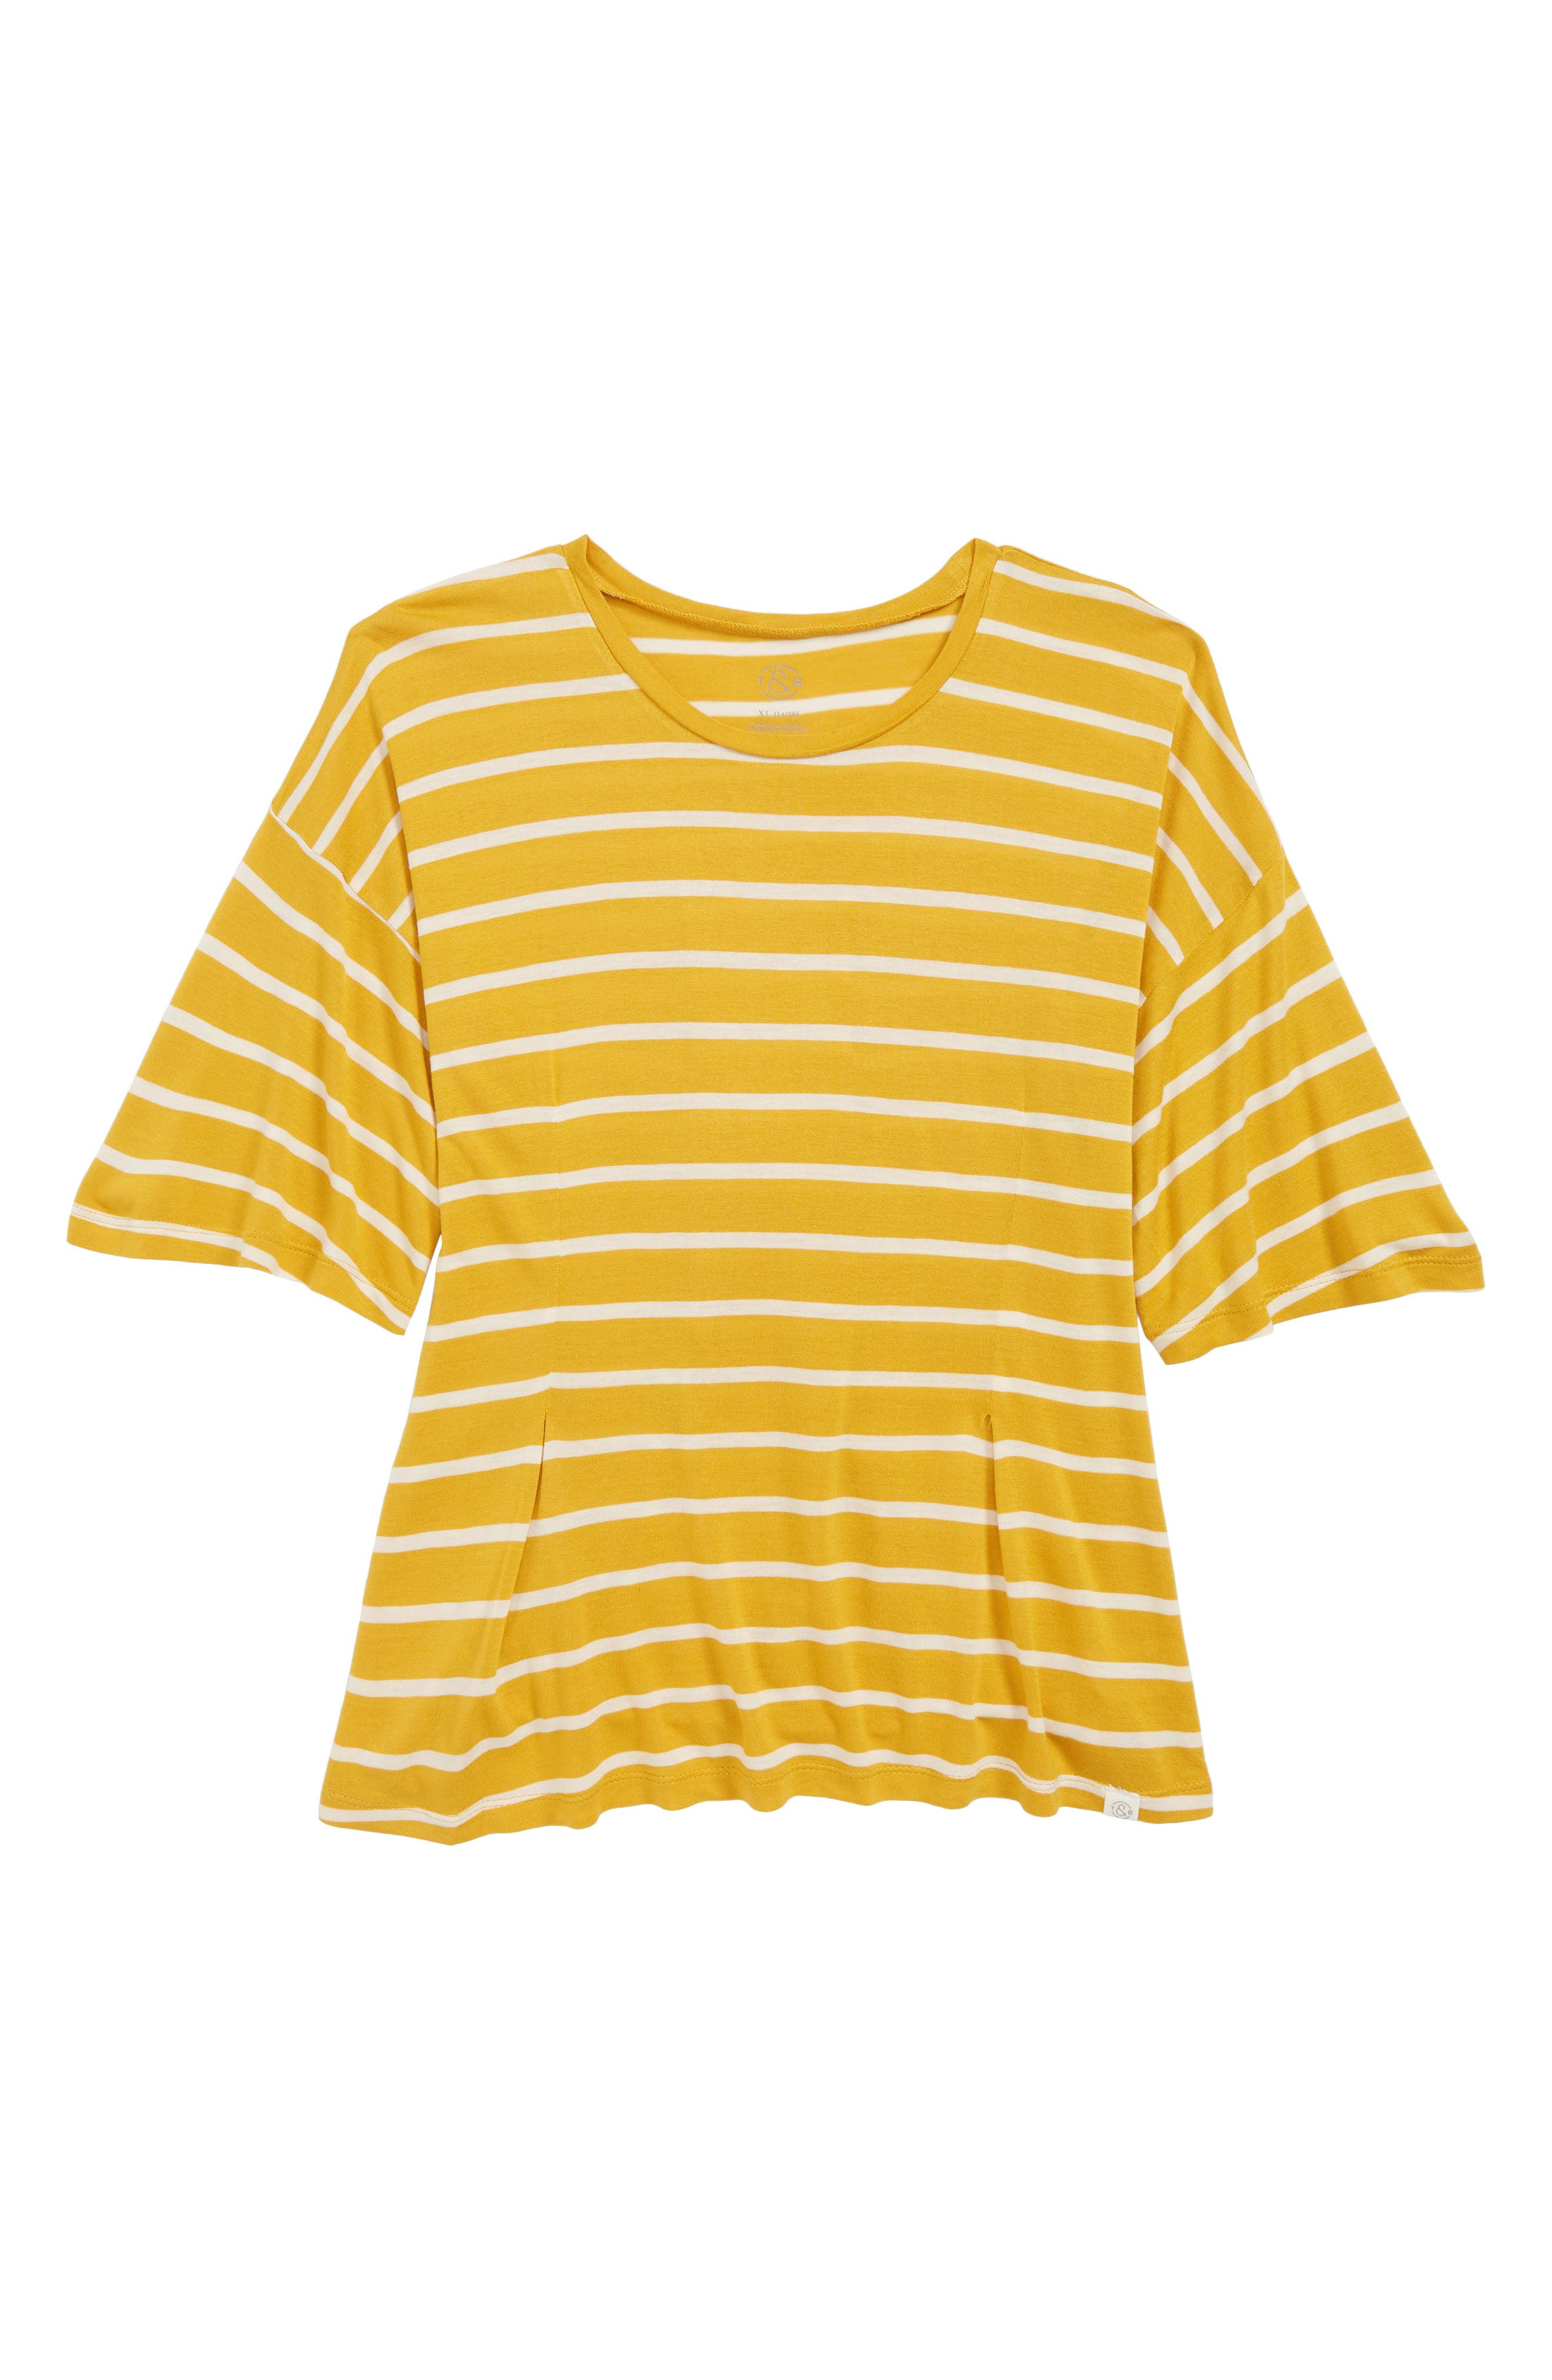 Lace-Up Back Tee,                             Main thumbnail 1, color,                             YELLOW MINERAL- IVORY STRIPE